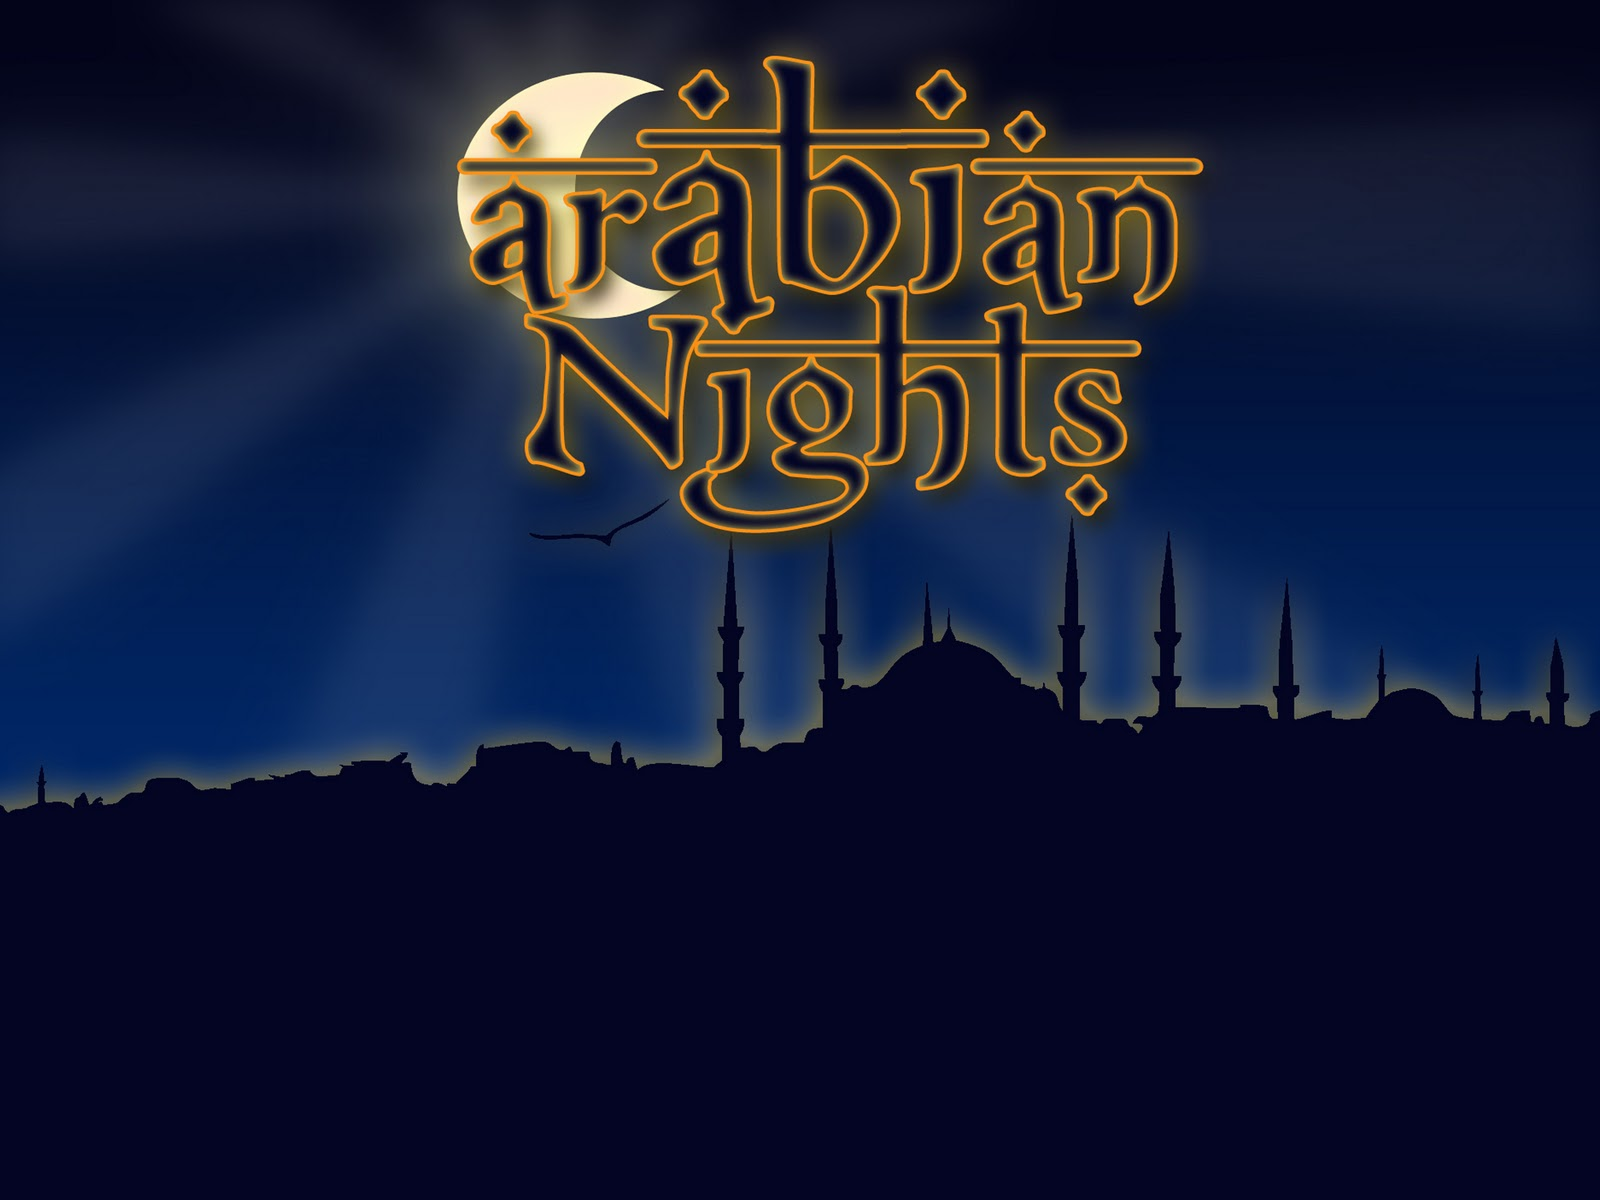 Arabien Nights Backgrounds, Compatible - PC, Mobile, Gadgets| 1600x1200 px